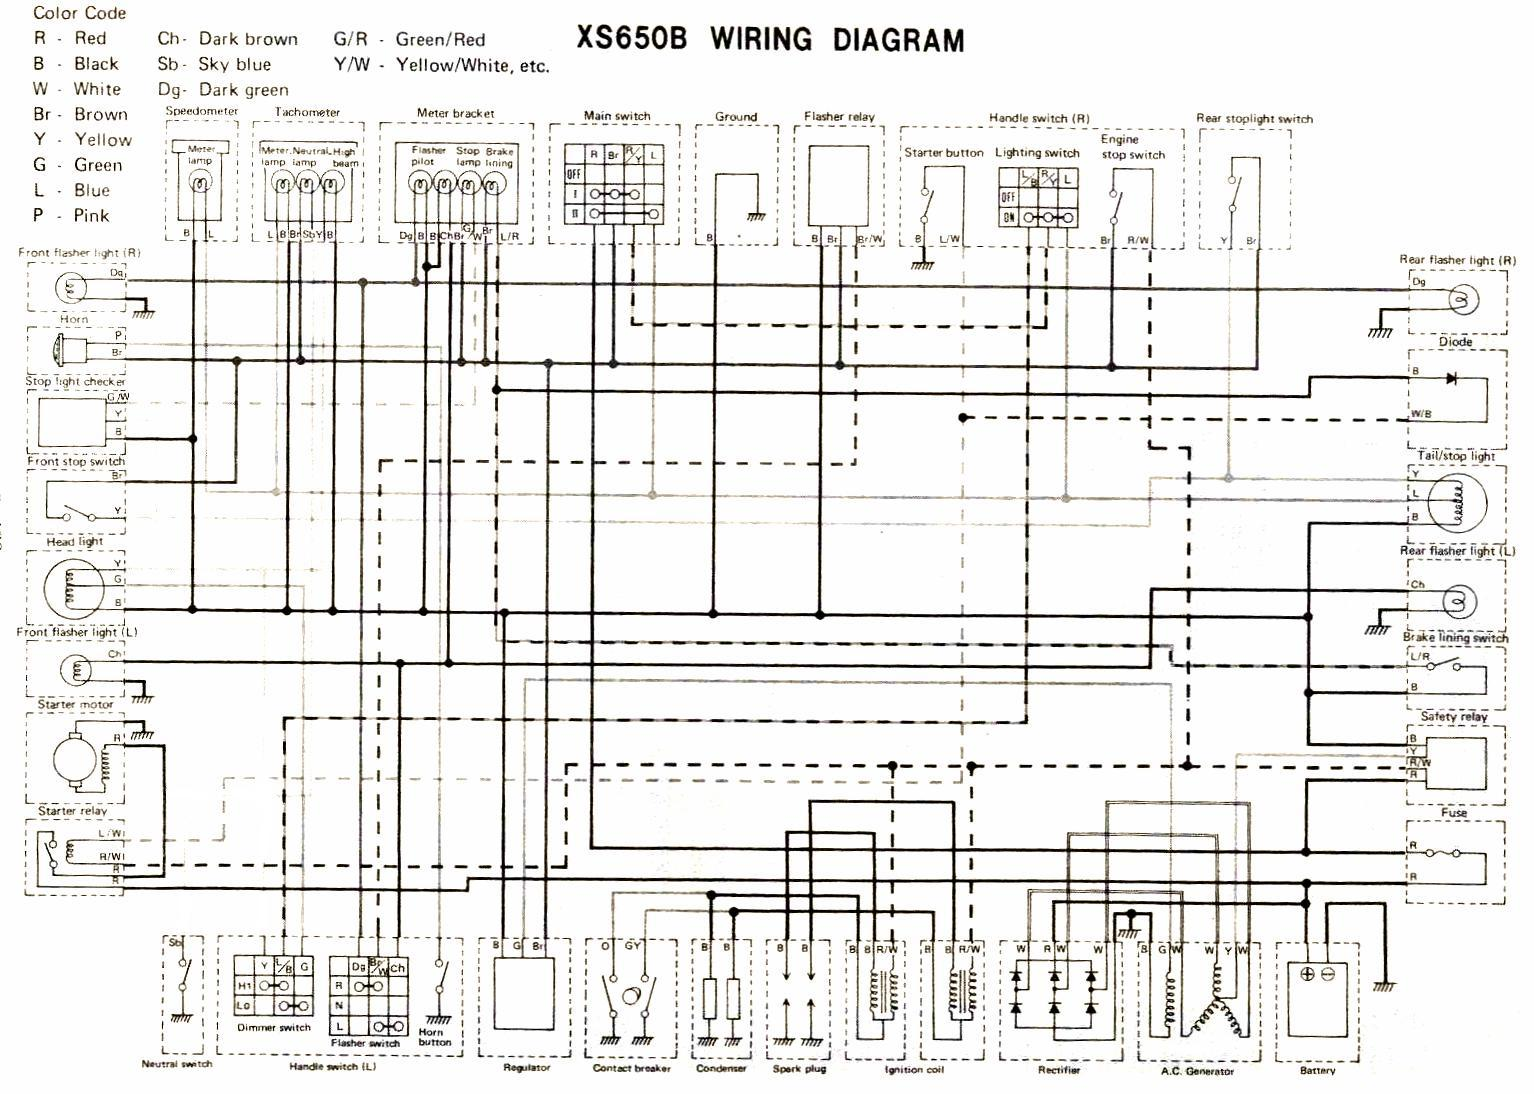 yamaha xs650 wiring diagram free picture schematic example rh cranejapan co